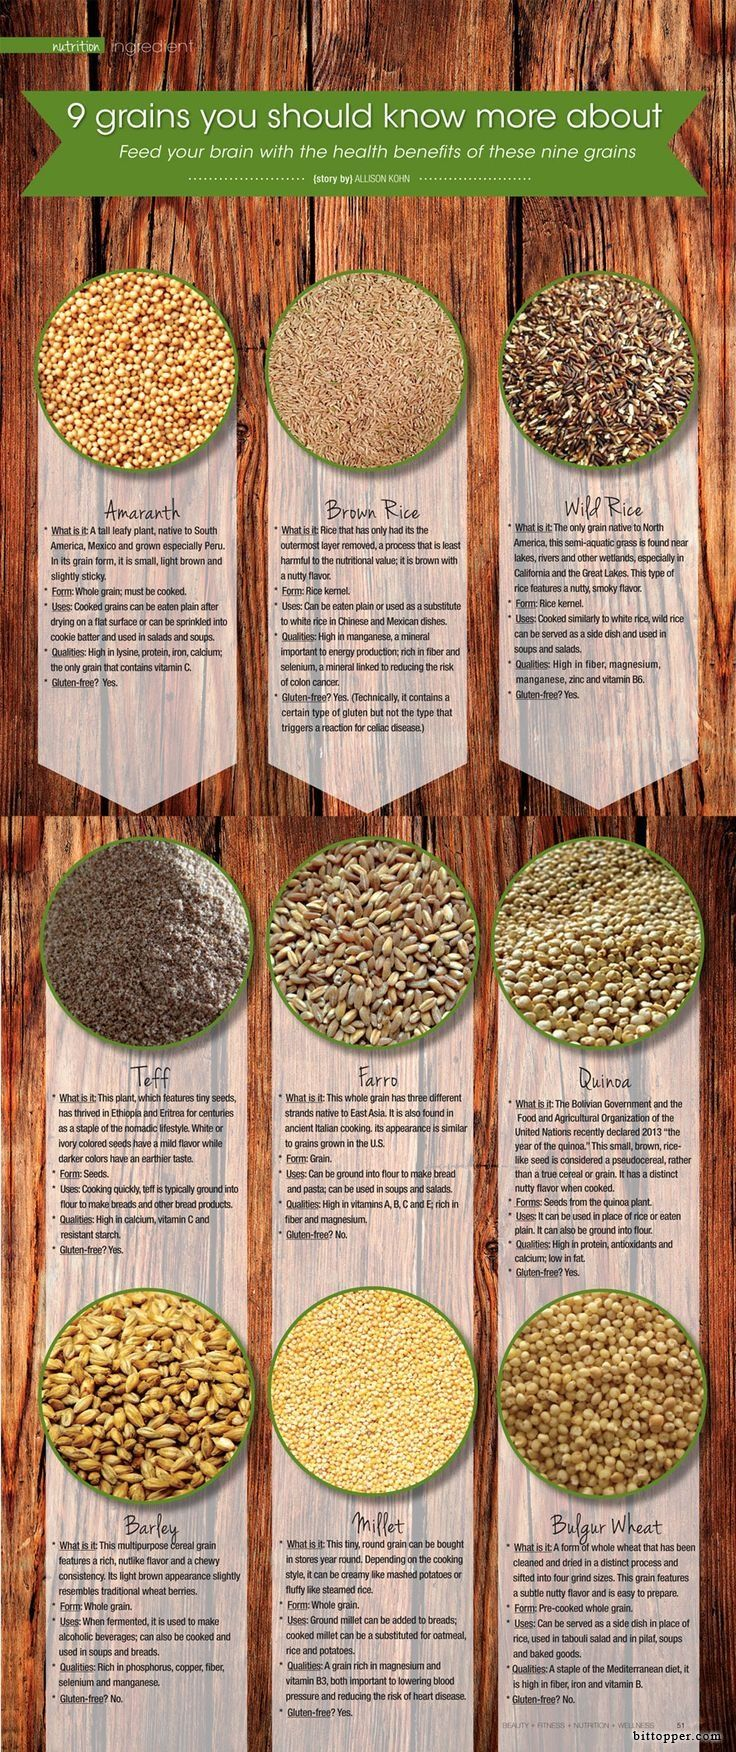 78 Best Health Food Images On Pinterest Healthy Living 13 Killer Circuit Workouts You Can Do At Home Minqcom 9 Super Grains And Why Should Make More Meals With Them An Infographic From Good Kc